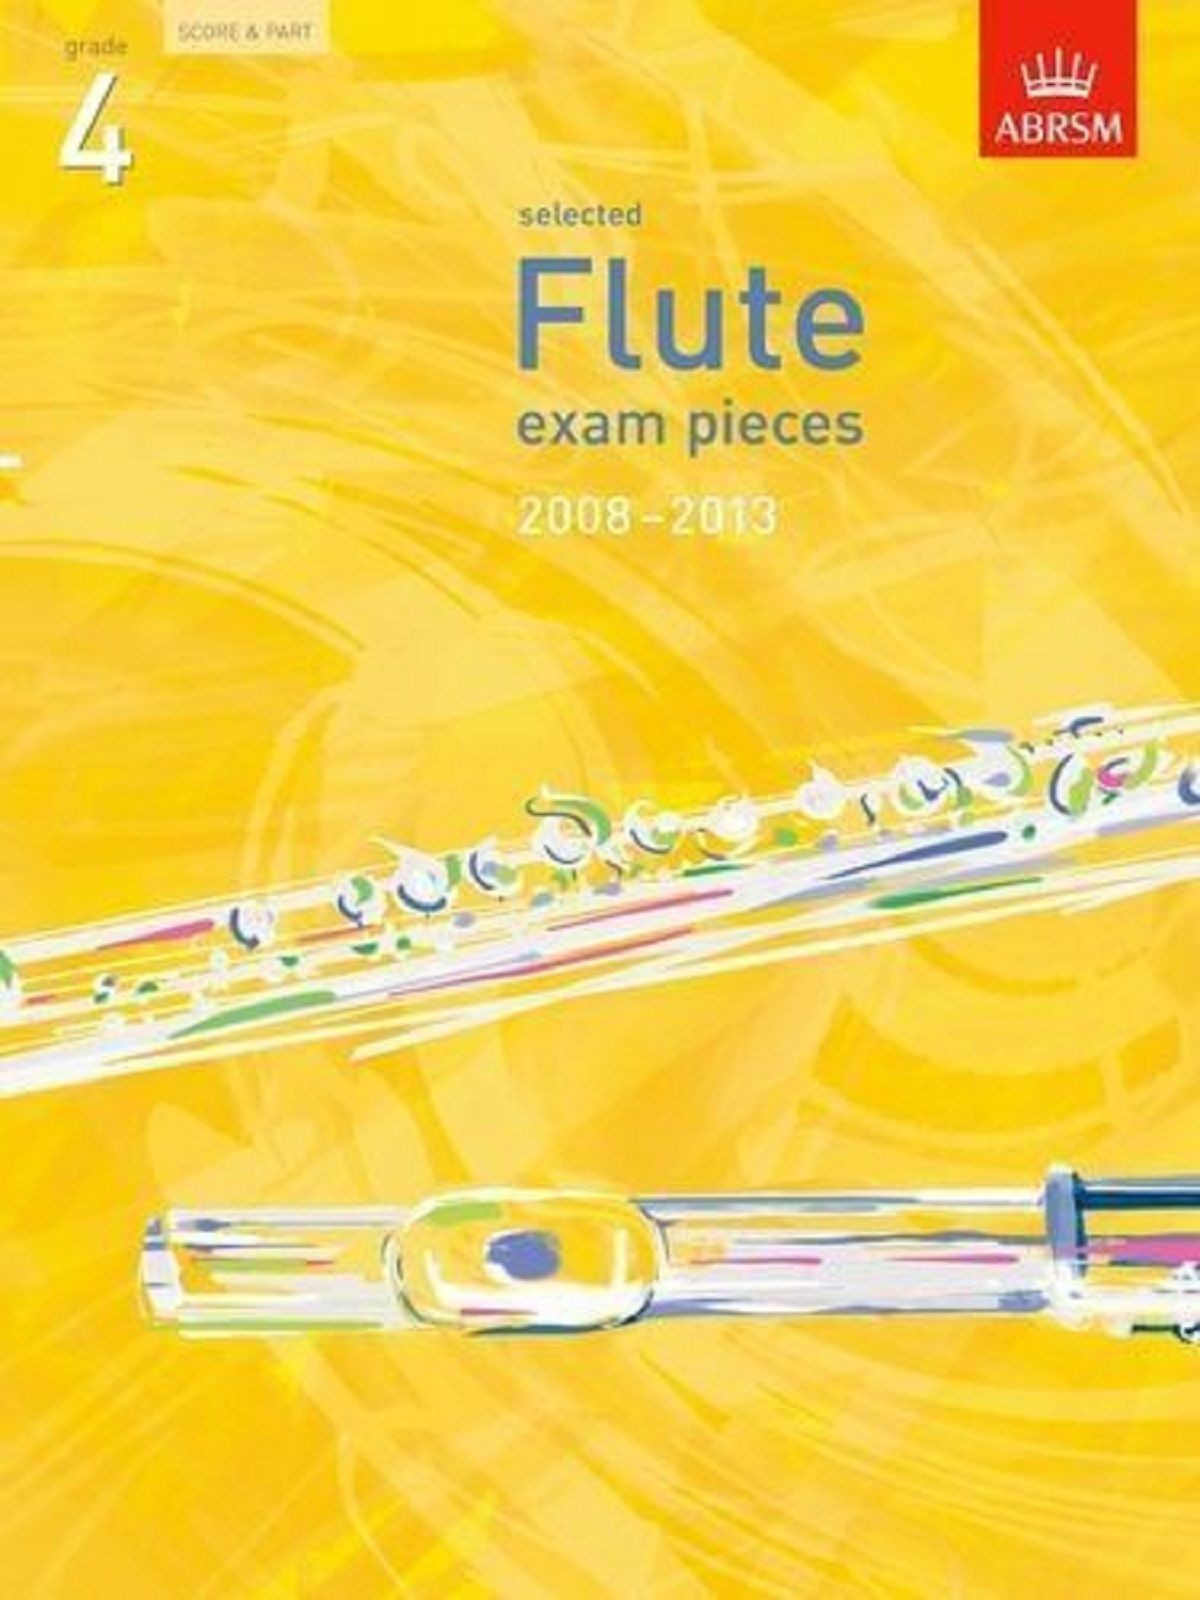 Selected Flute Exam Pieces 2008-2013 Grade 4 Score & Part ABRSM Music Book S125